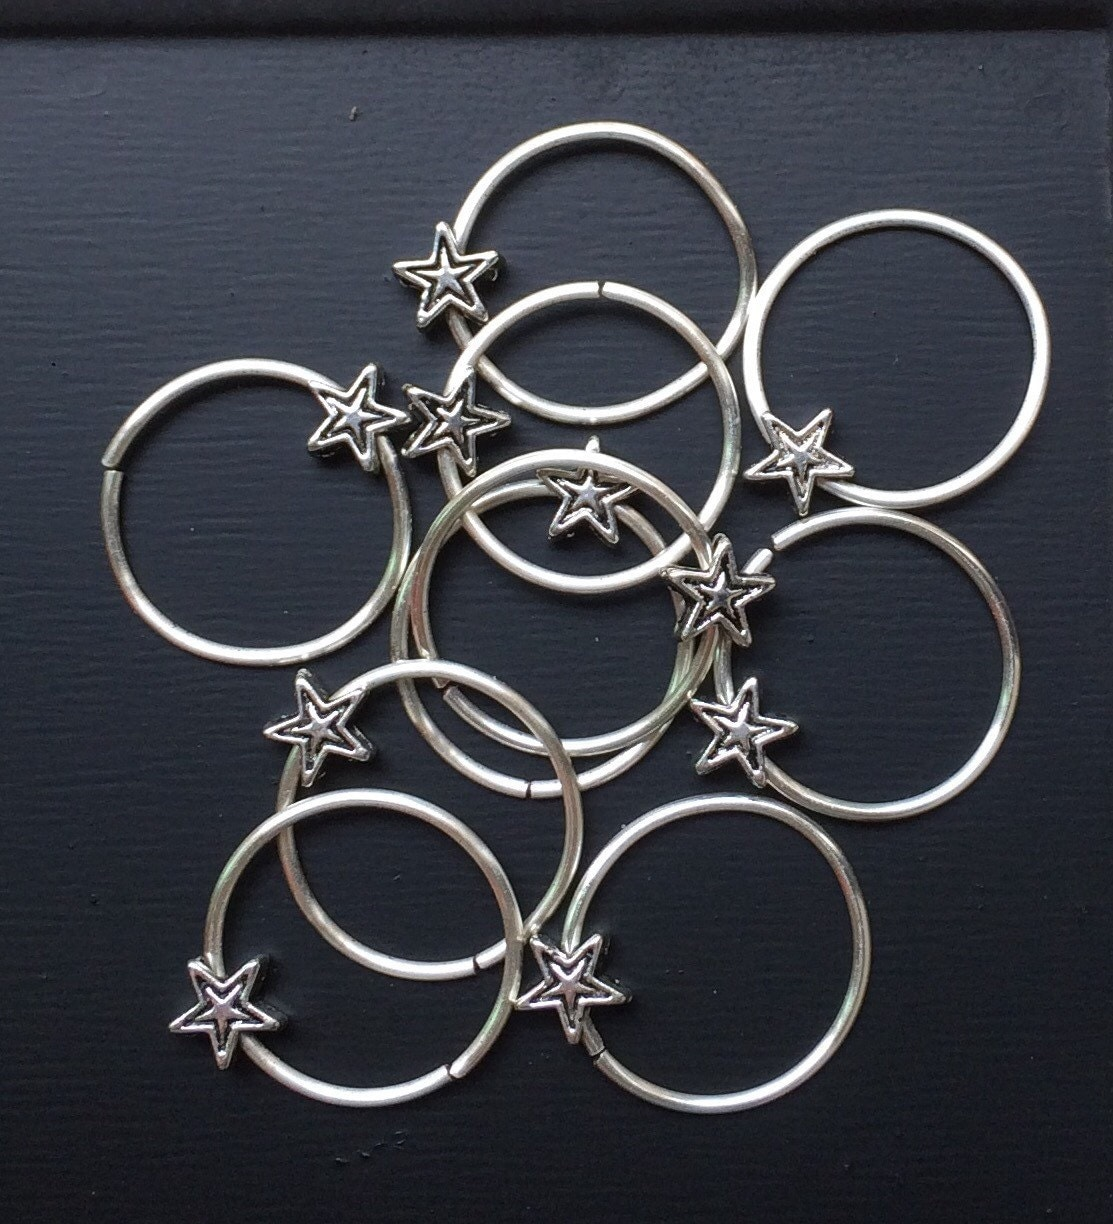 Silver hair rings silver star hair accessories for by ...